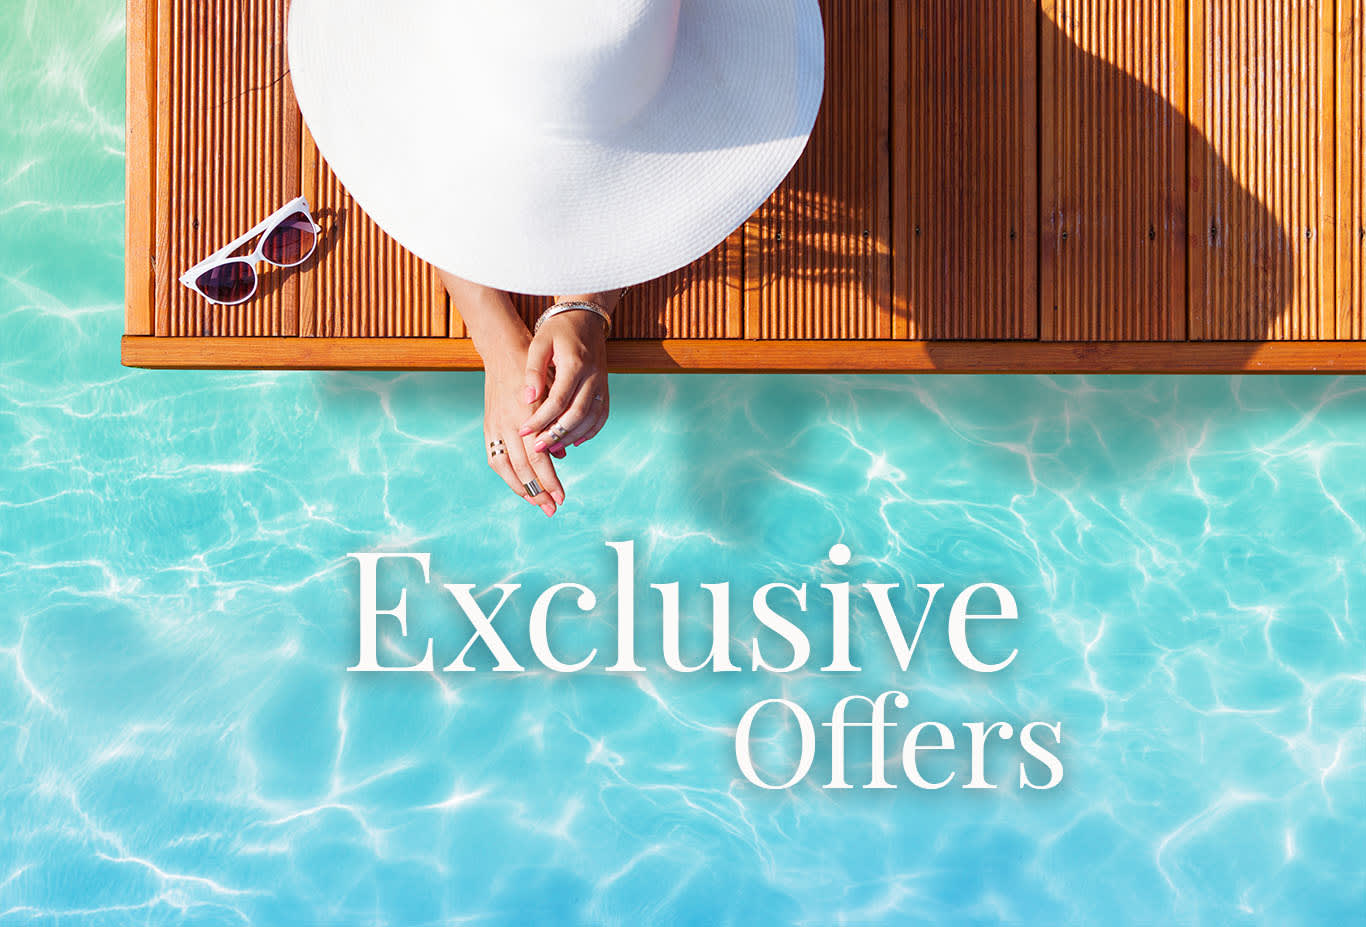 Exclusive offers, just for you